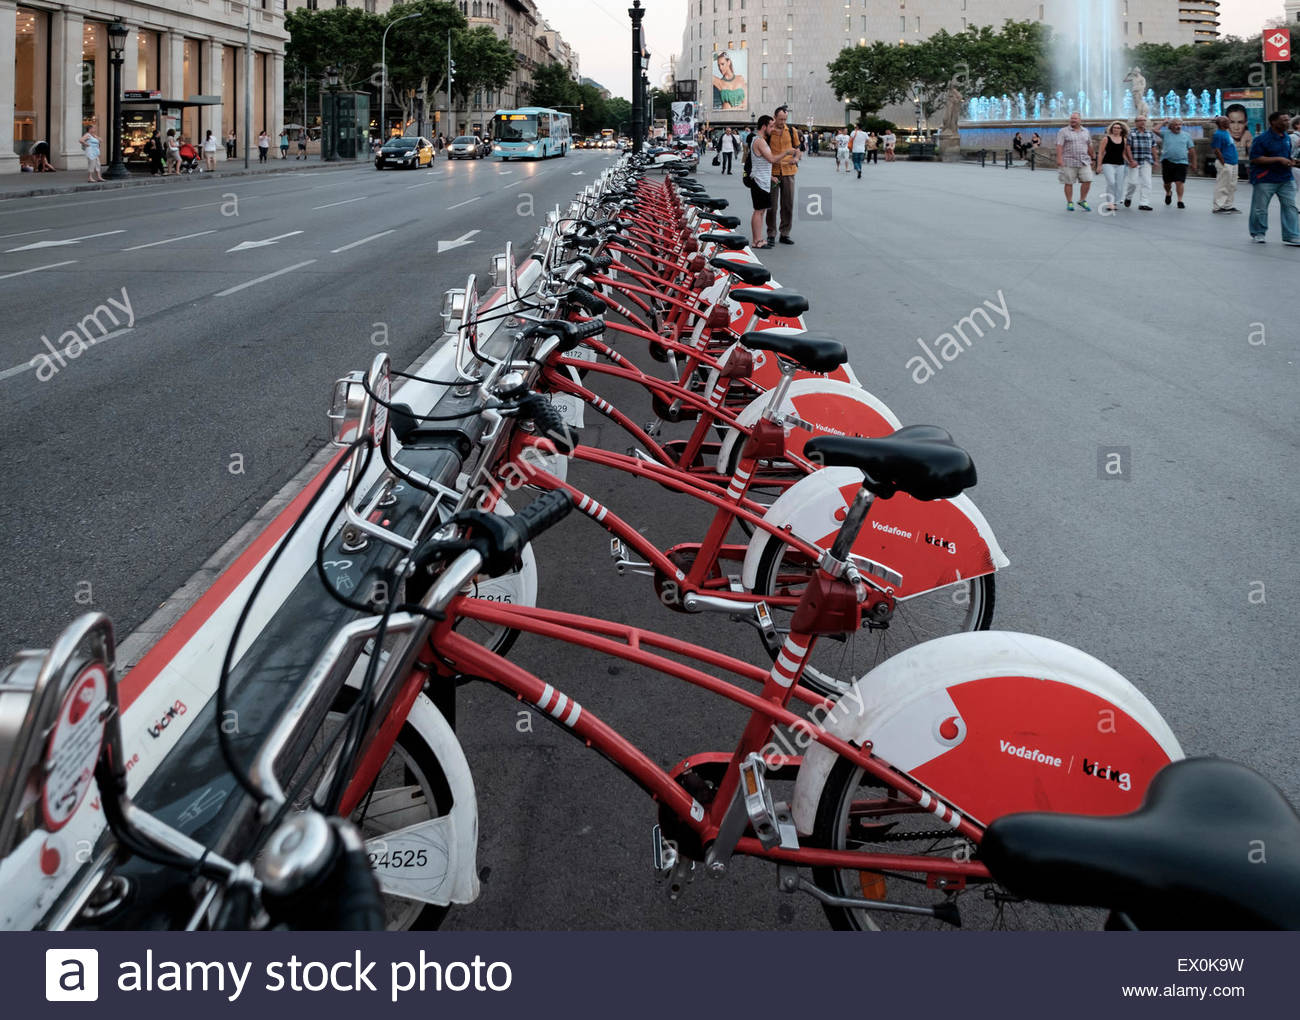 a row of Barcelona's Bicing rented bikes - Stock Image